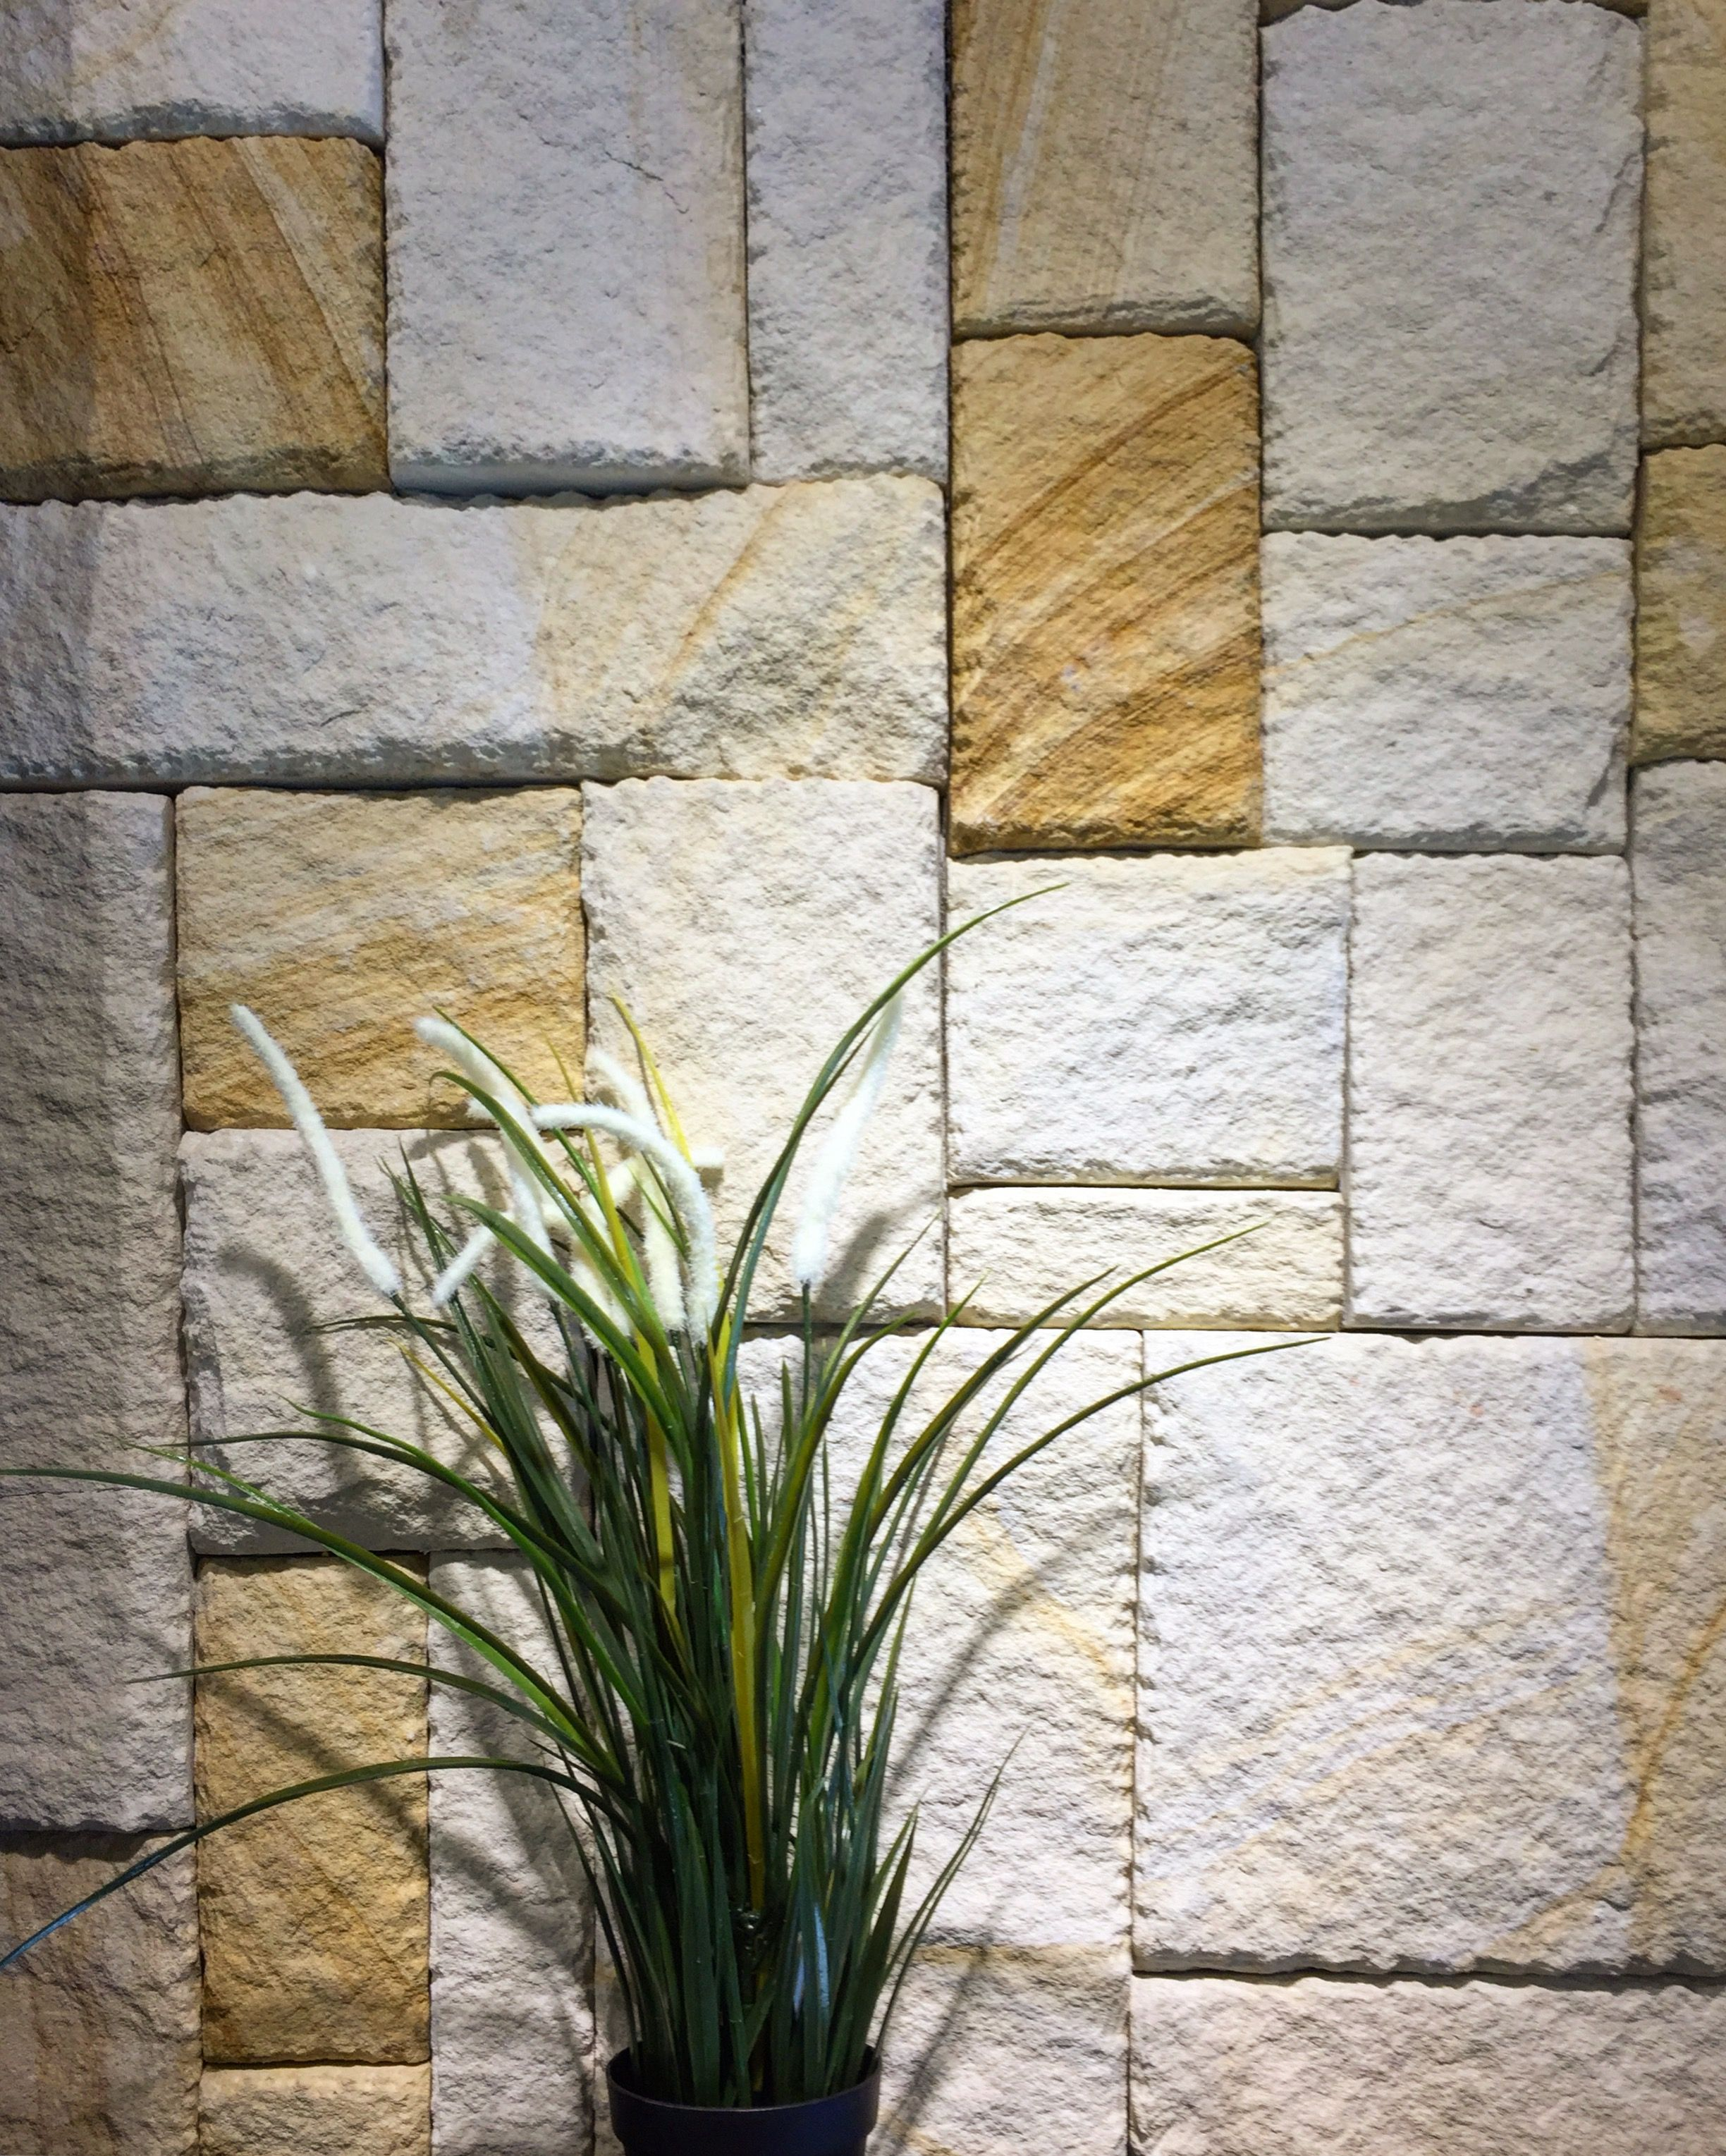 Australian Sandstone Colonial Walling Made Up Of Natural Sandstone Cladding Available In 4 Color Sandstone Cladding Natural Stone Cladding Stone Wall Cladding